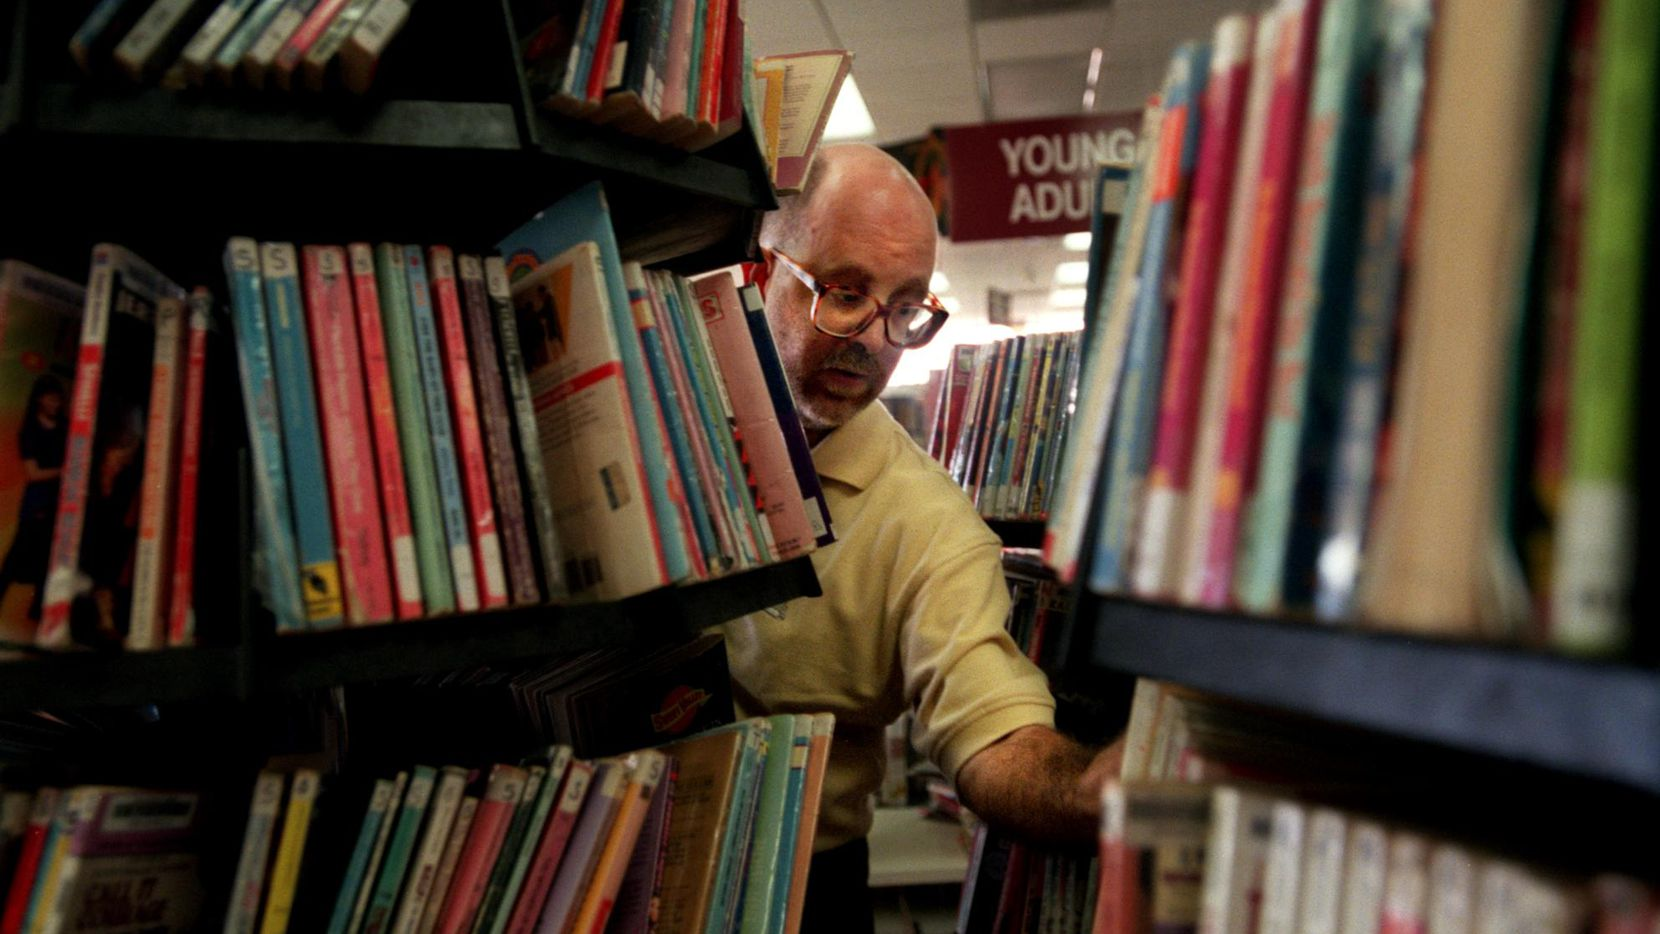 In this file photo, Charles David Smith, 39, puts books away at the North Oak Cliff Branch Library where he works as a page.